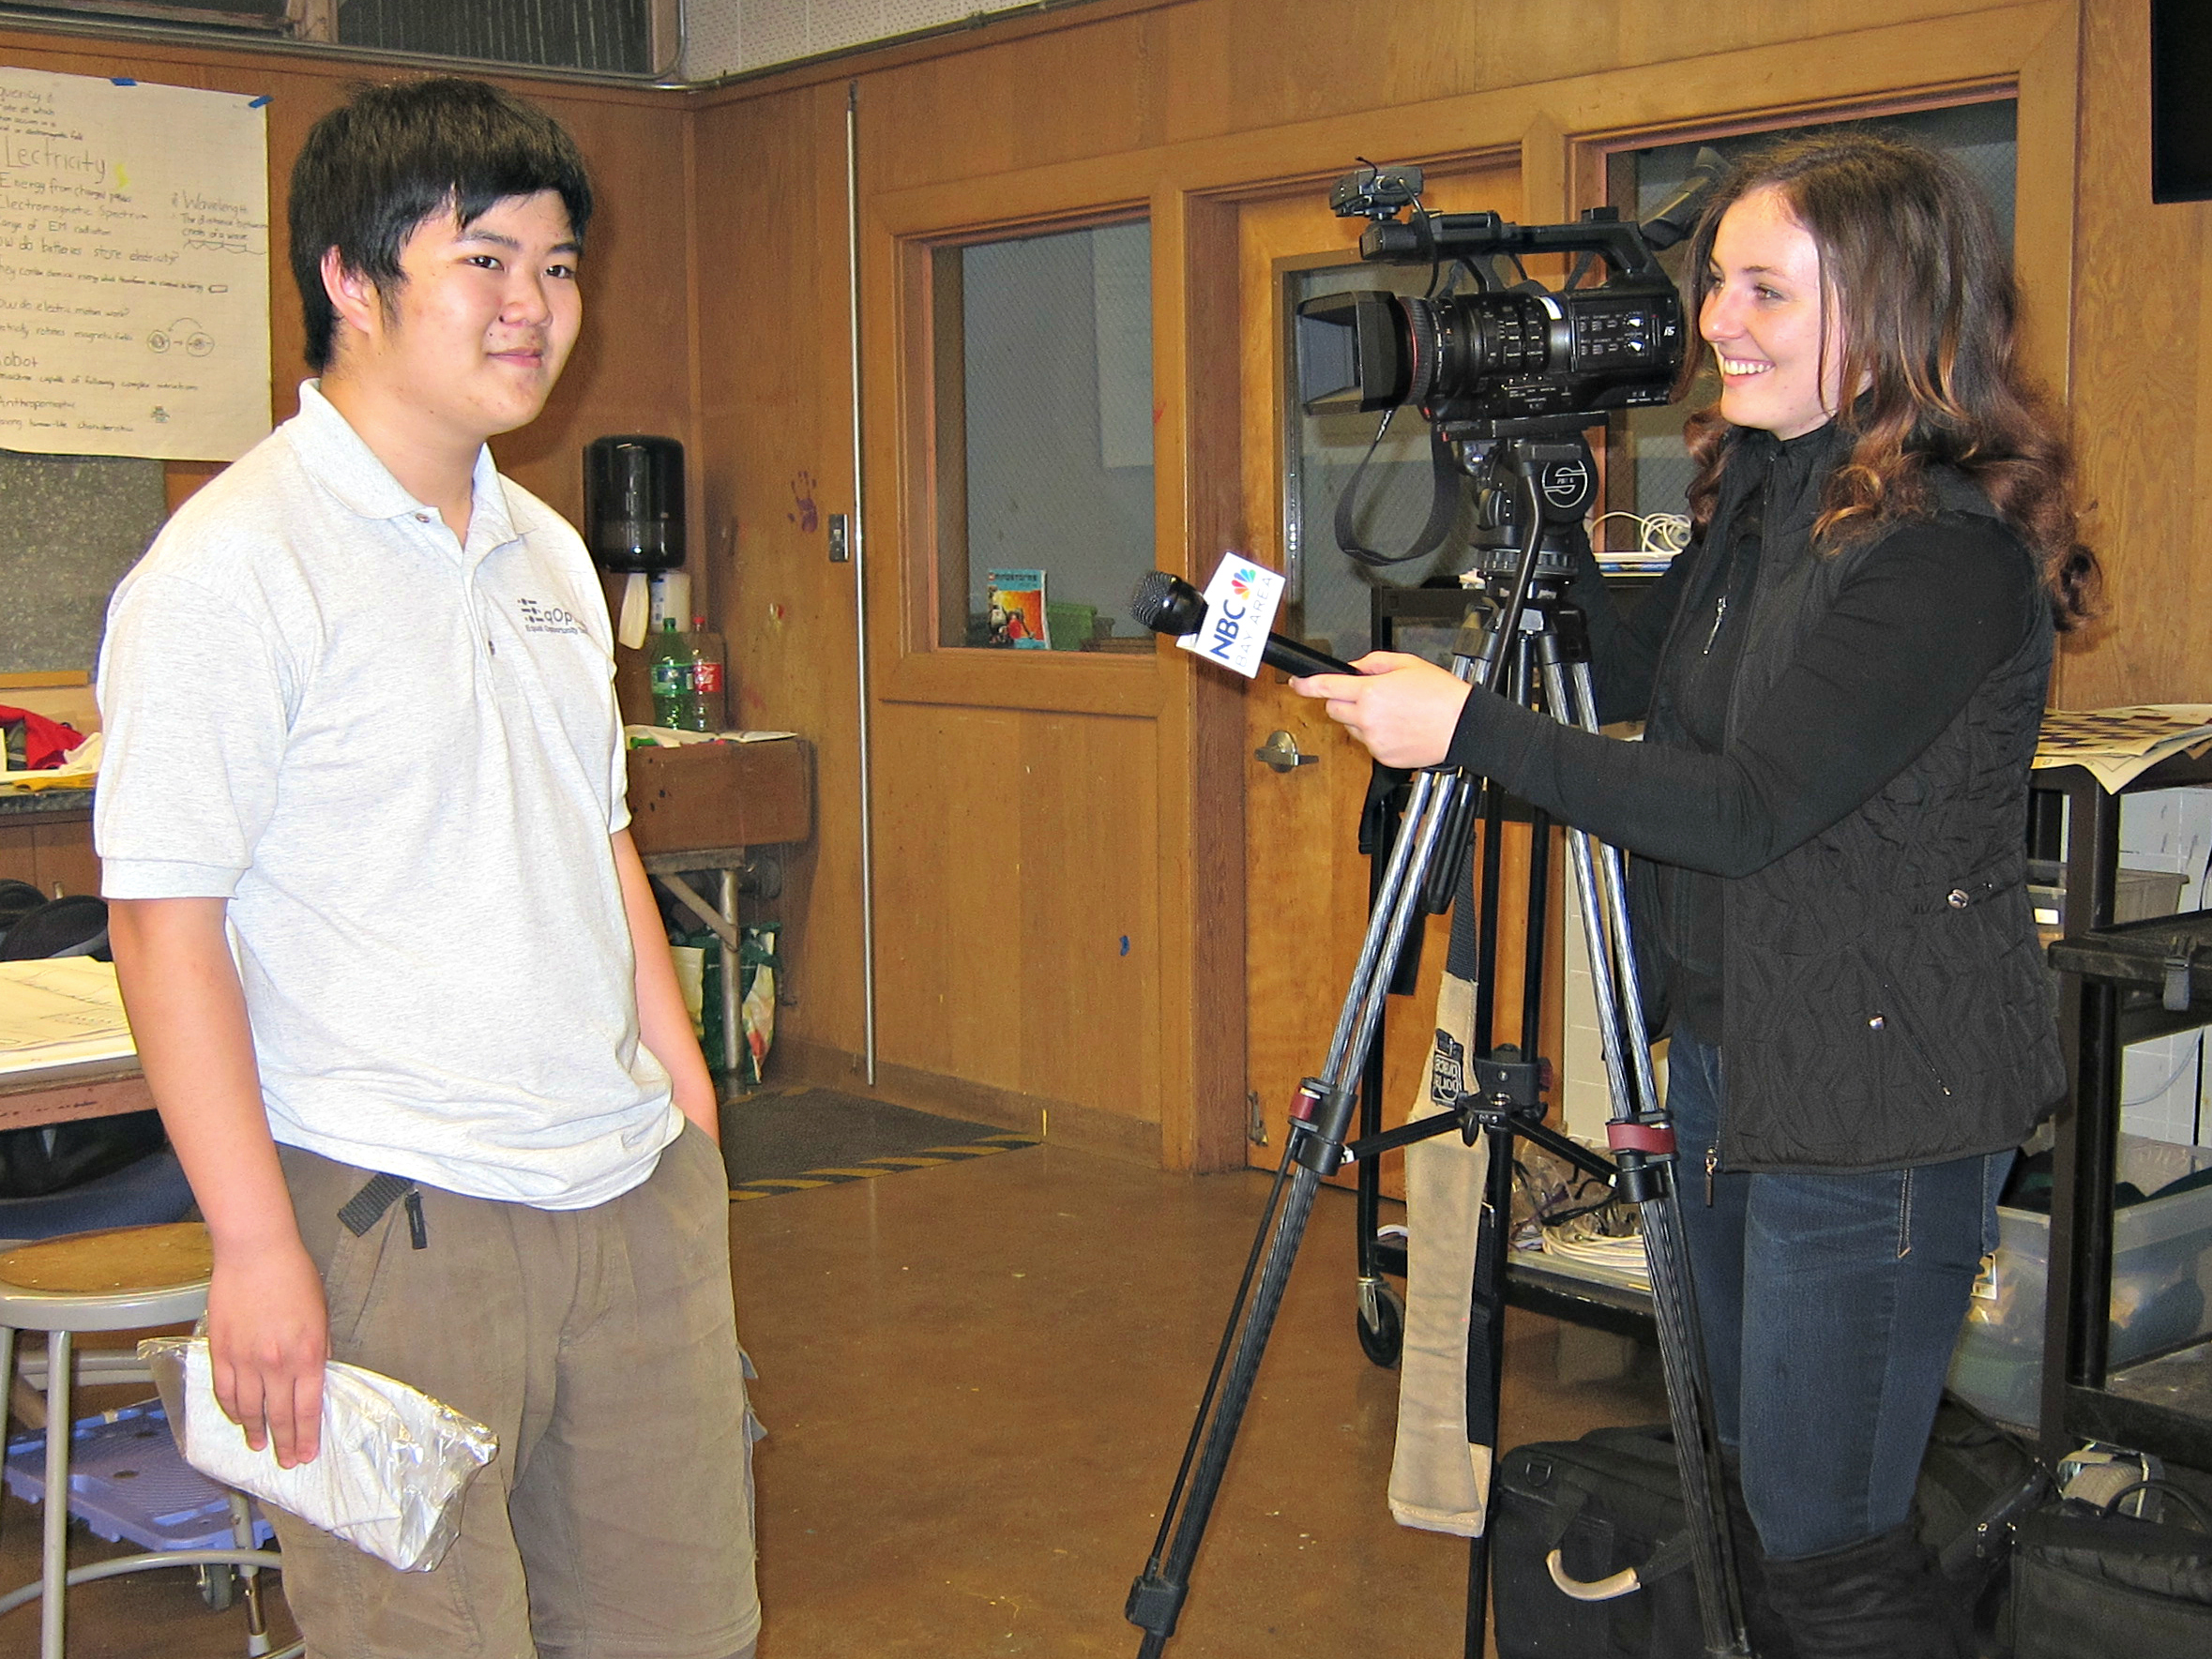 Rebecca Greenway, reporter journalist from NBC Bay Area interviewing Terence Lee (left), EqOpTech Founder